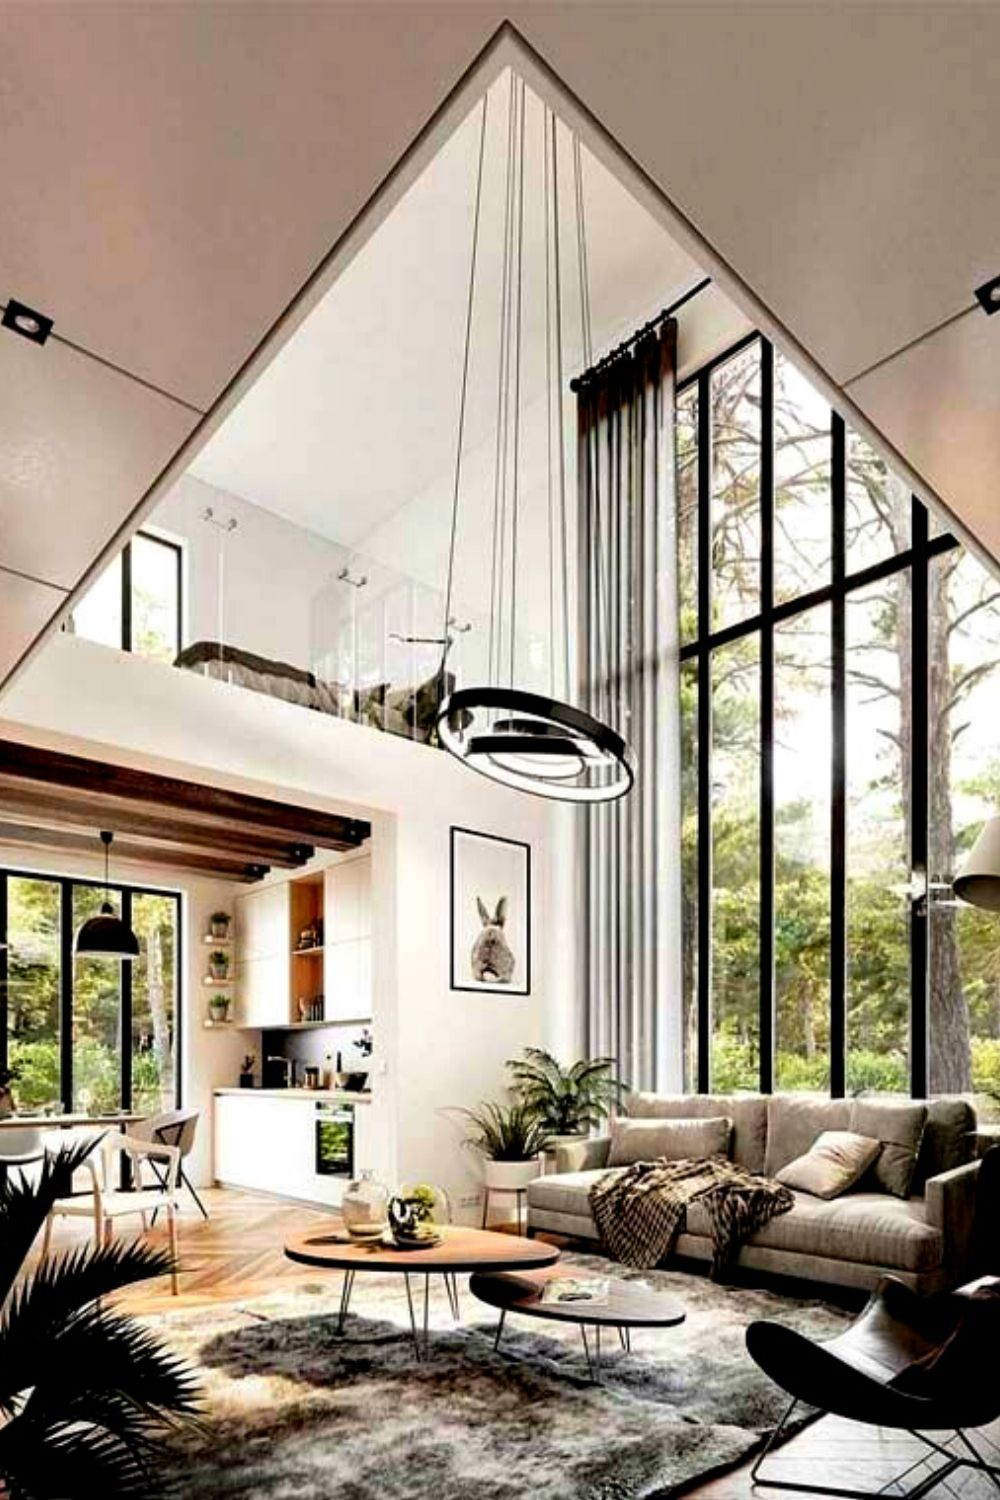 New Architecture Trends For 2020 And 2021 In 2020 Contemporary Decor Living Room Modern Houses Interior Best Interior Design